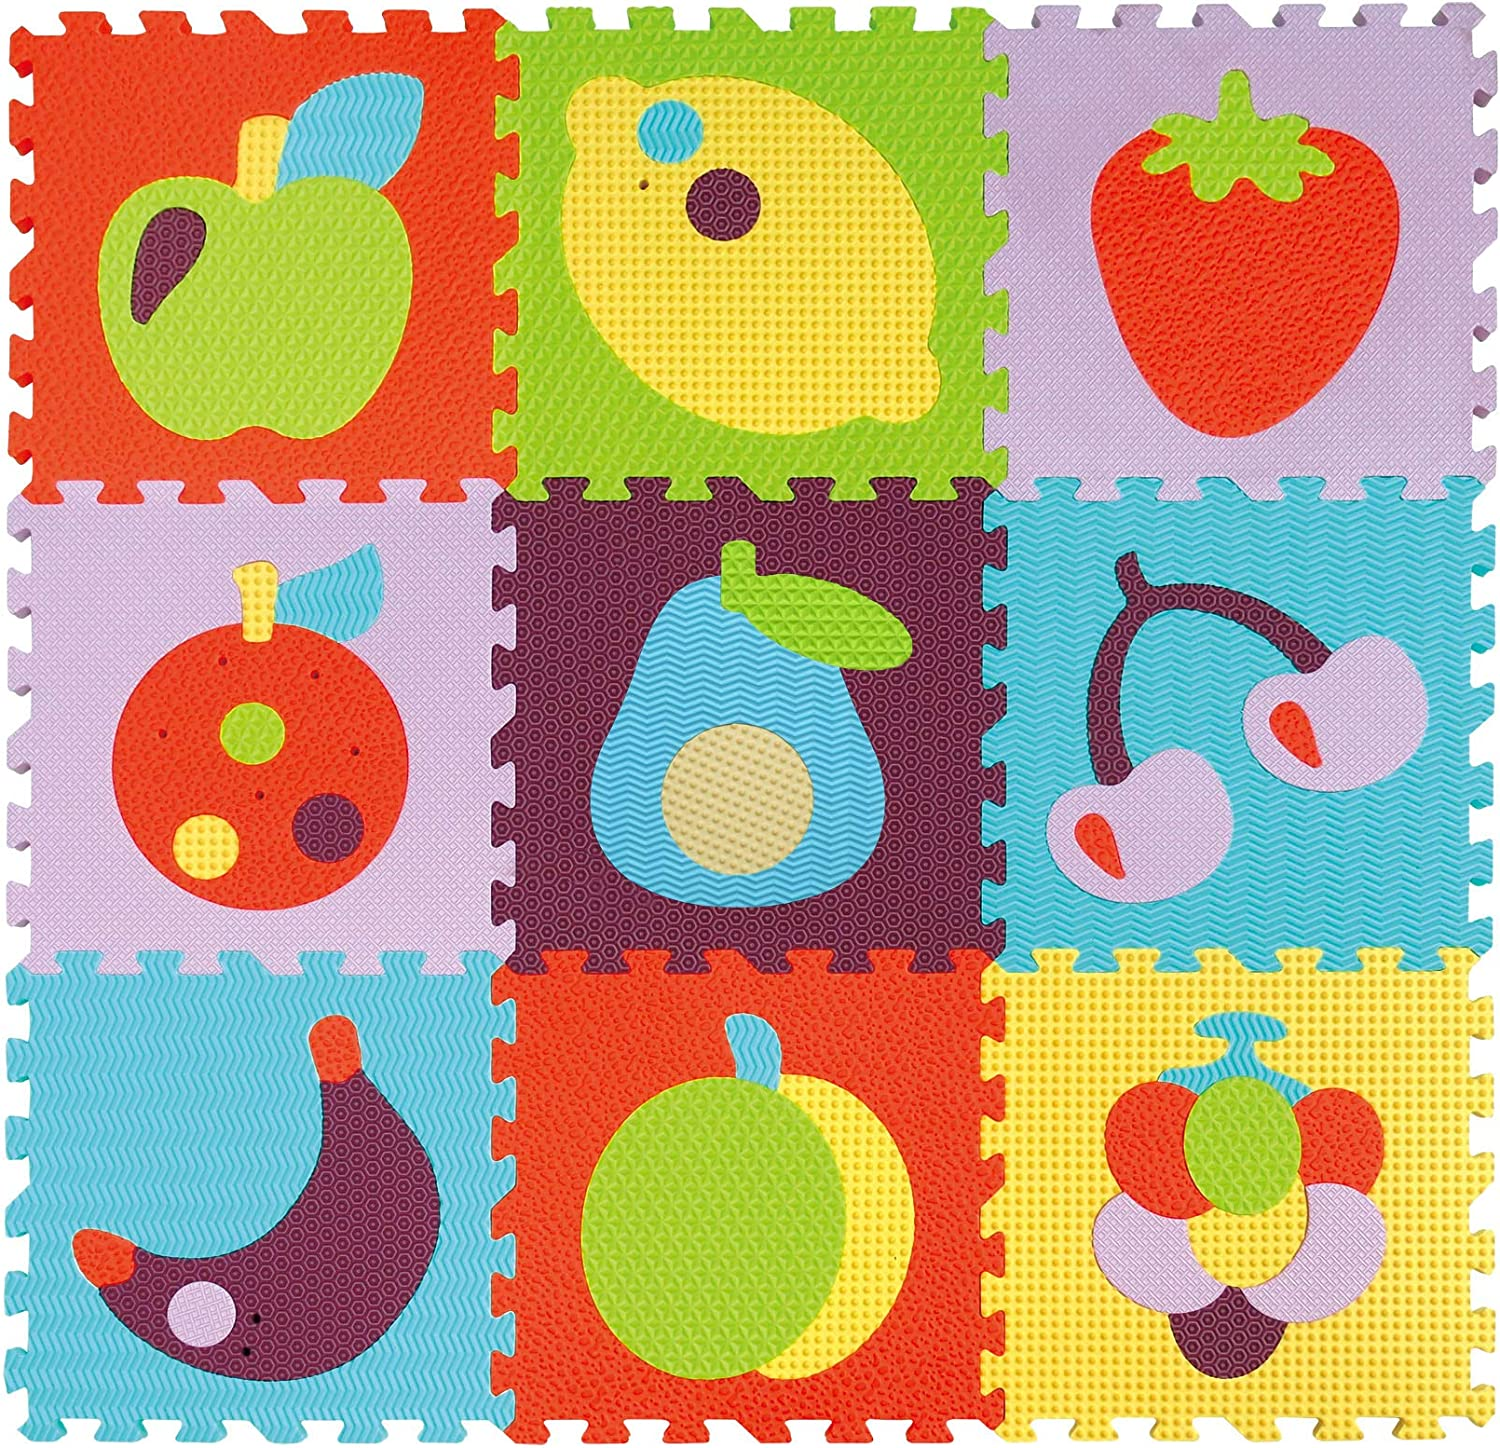 Babygreat Max 89% OFF Puzzle Baby Play Mat Children Kids and for Toddlers Super-cheap